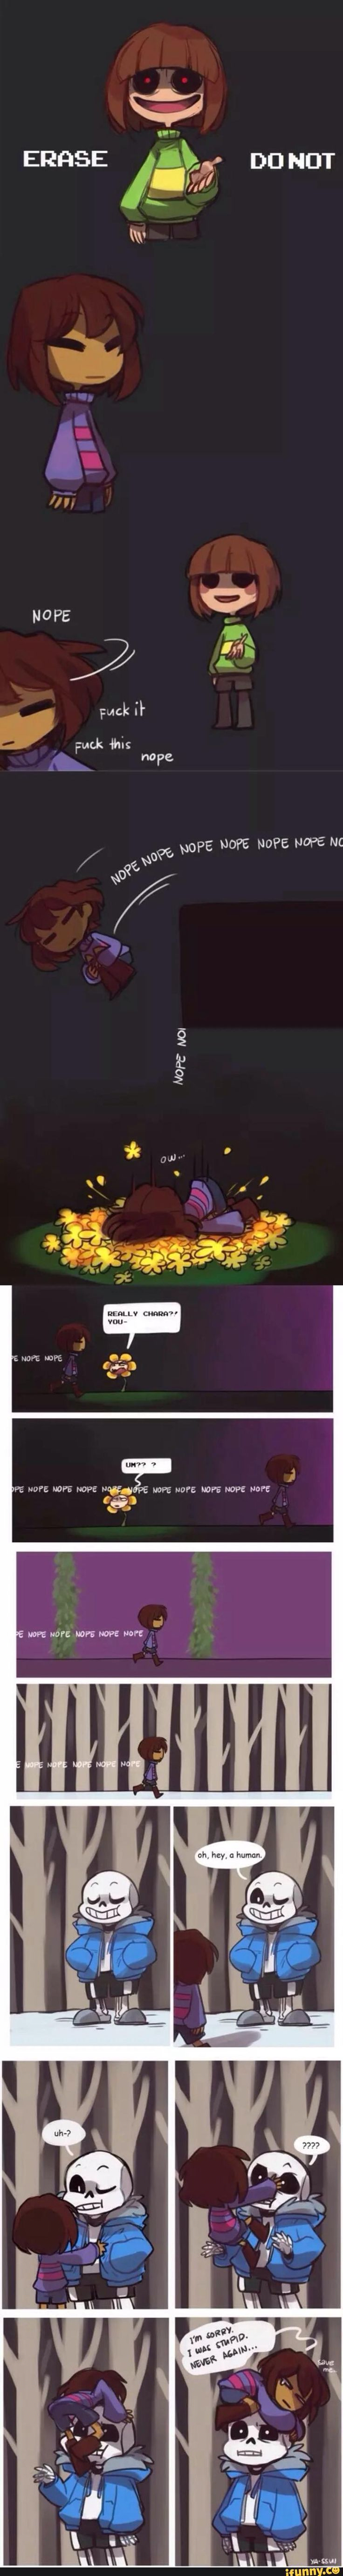 Undertale End of the Genocide run--Loving Chara's face. Note to self, this has Frisk, Chara, Flowey, and Sans in it.